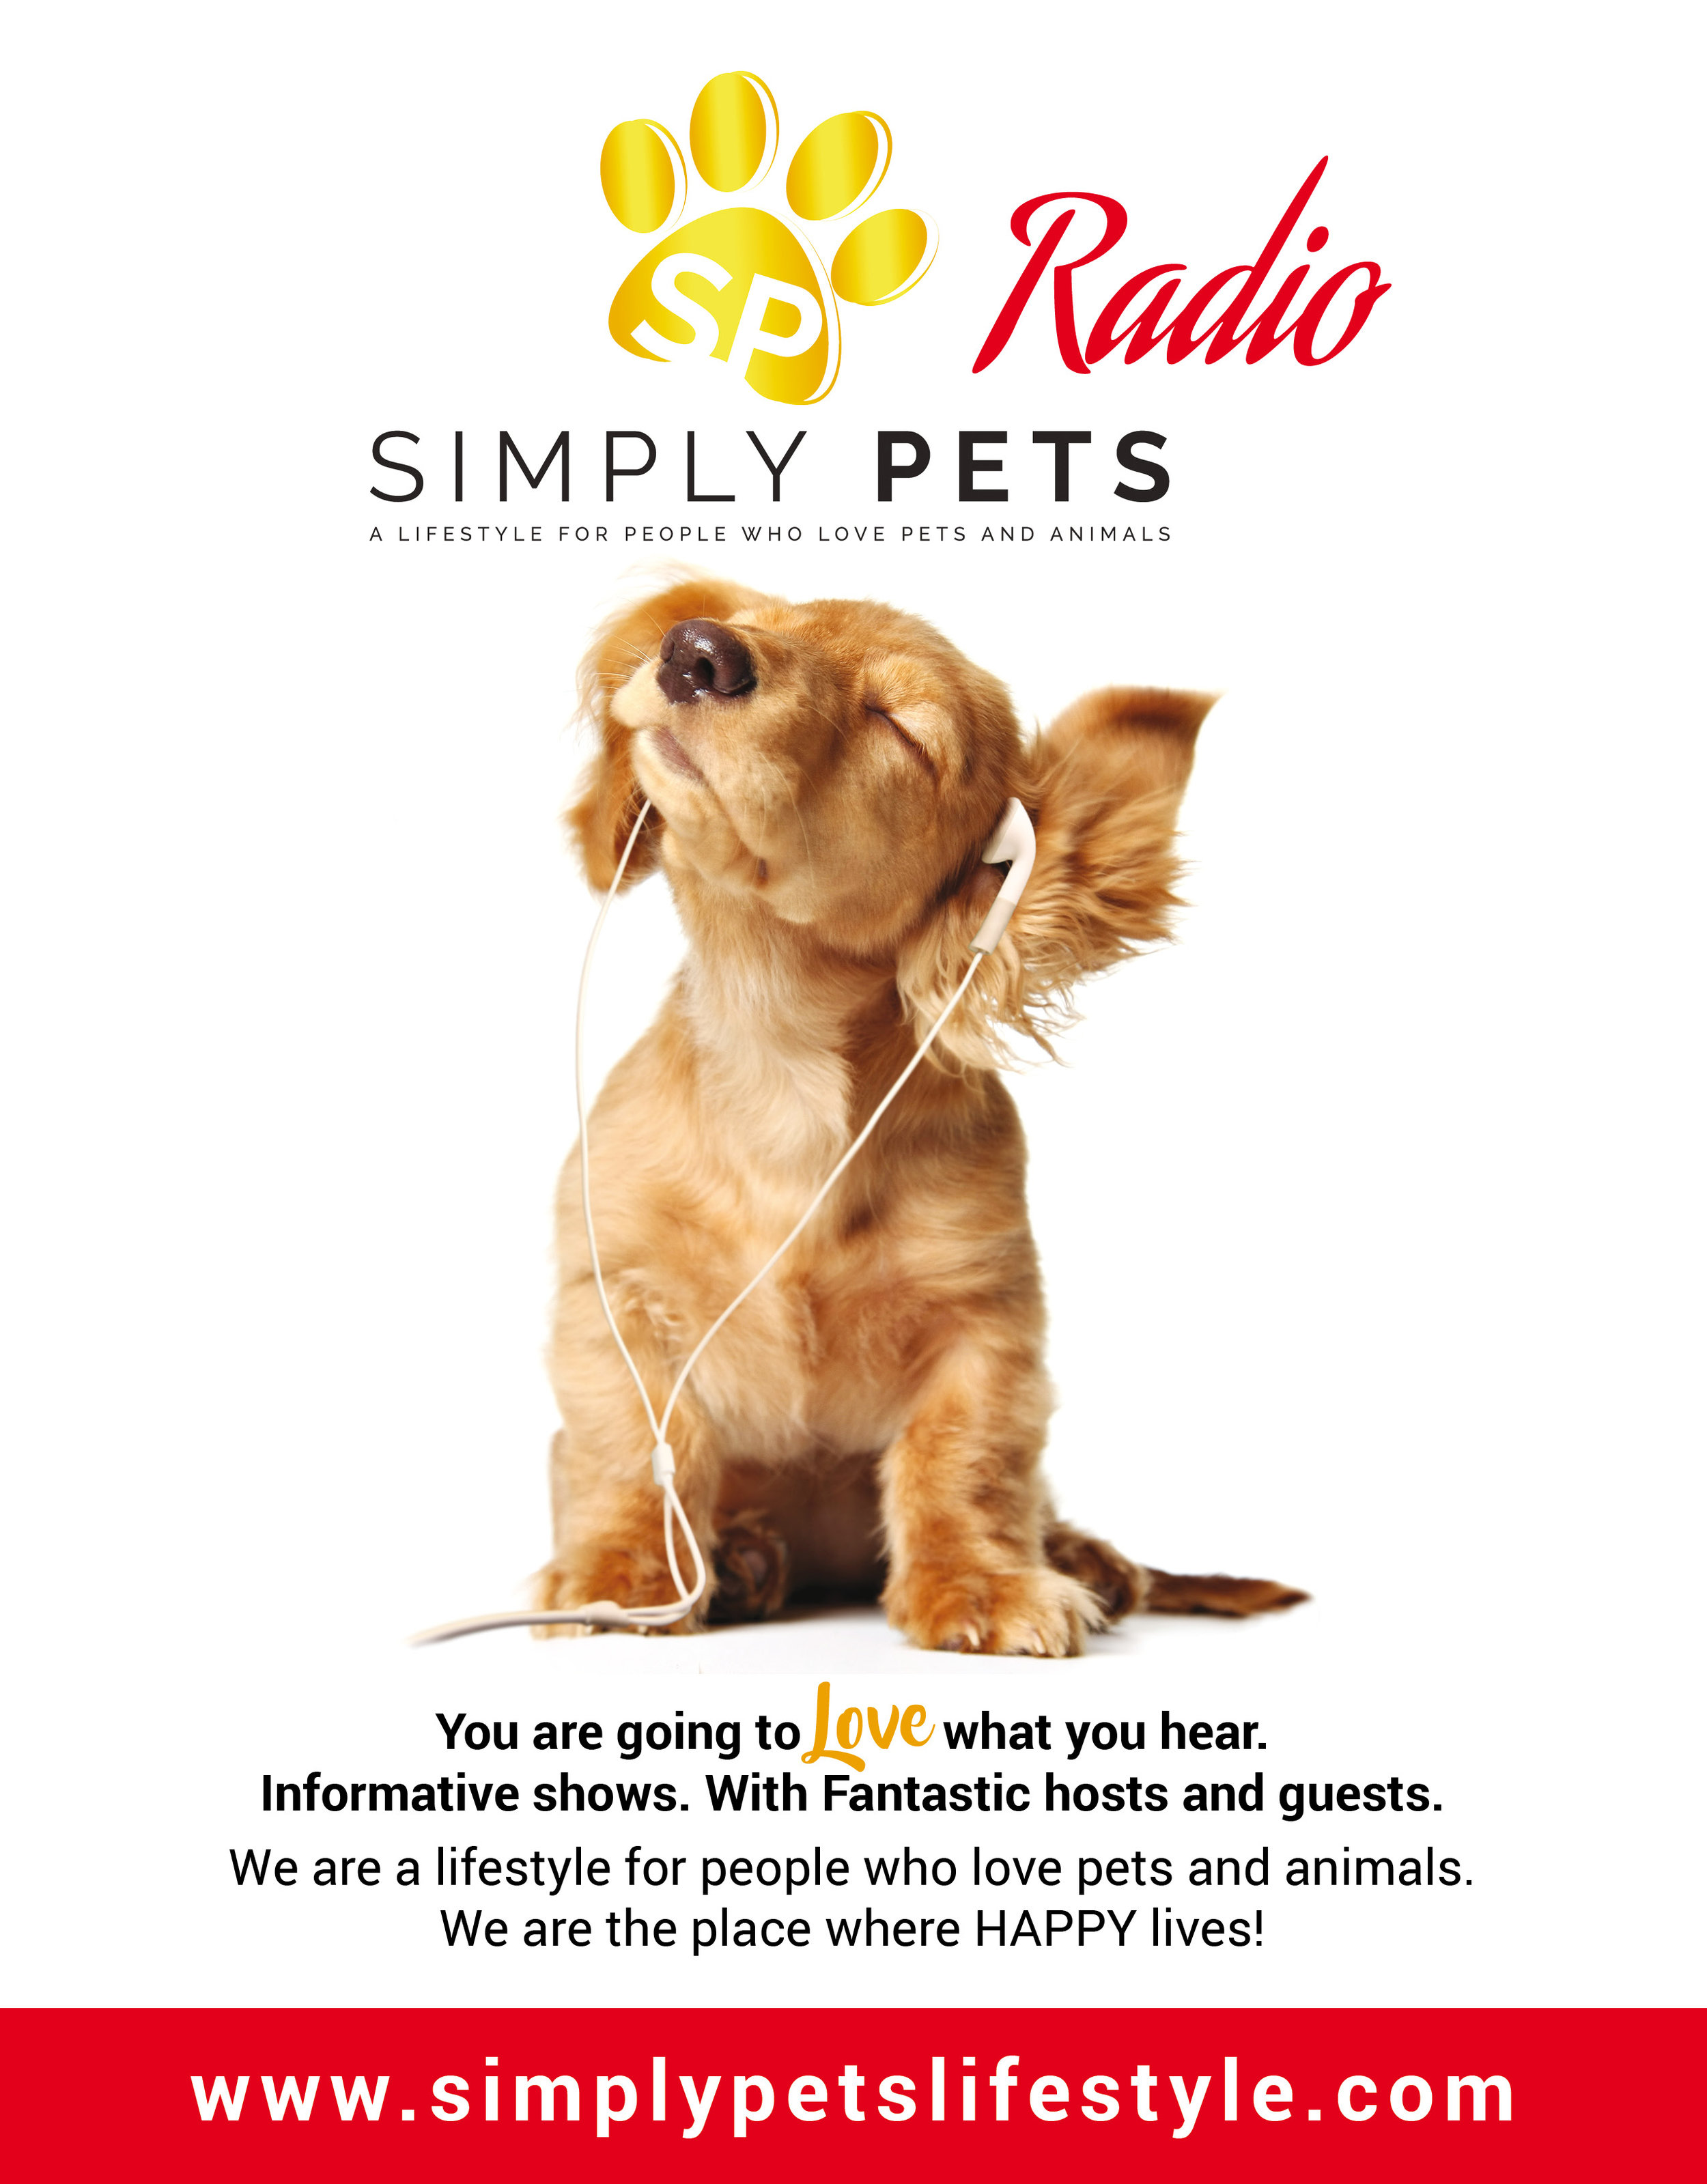 HAPPY lives here…Simply Pets Radio